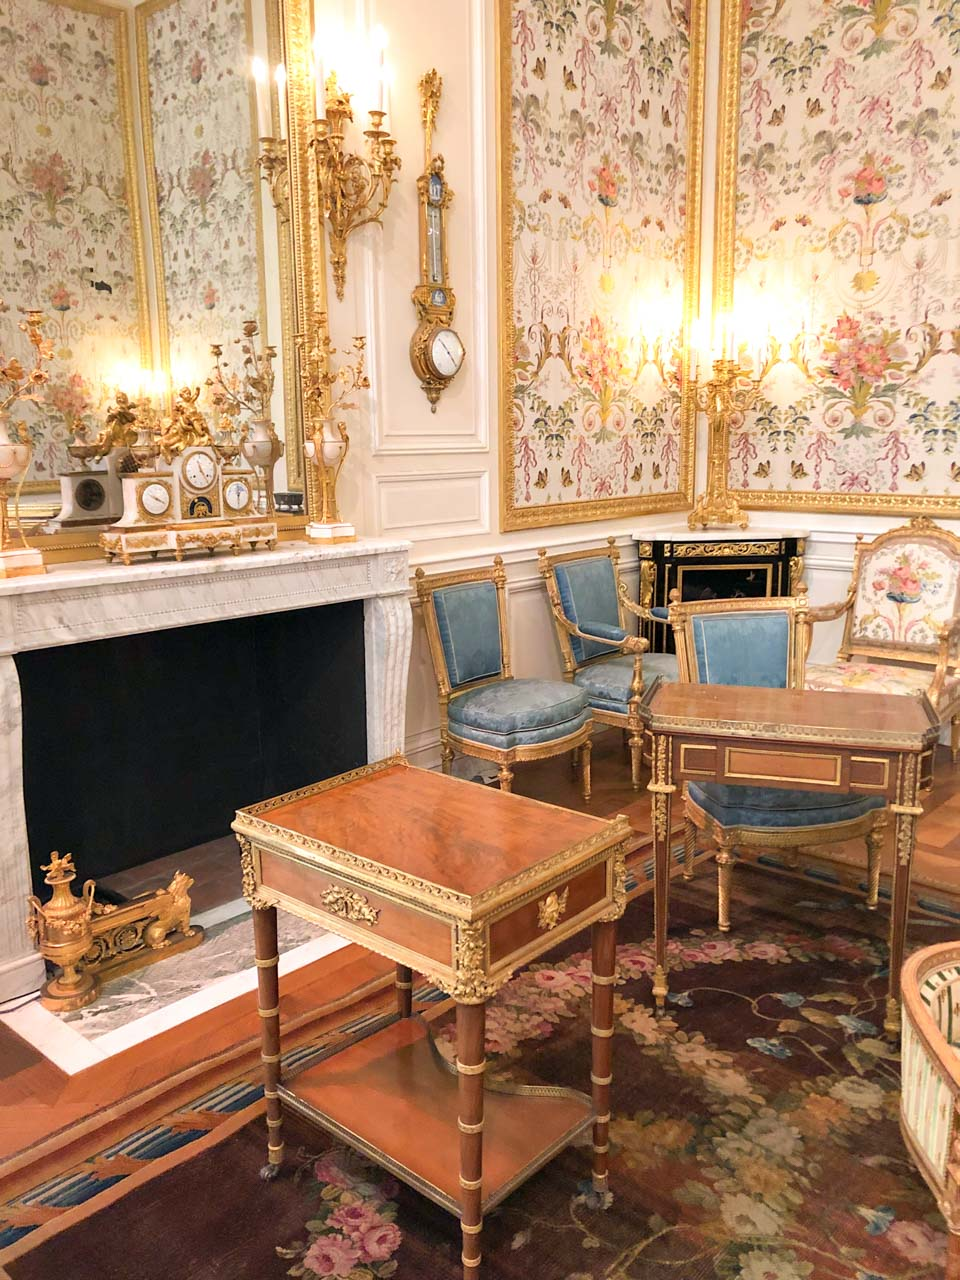 """The Restored """"From Louis XIV to Louis XVI"""" rooms in the Louvre with Baroque wallpapers, wooden cabinets and blue upholstered furniture next to the fireplace area"""